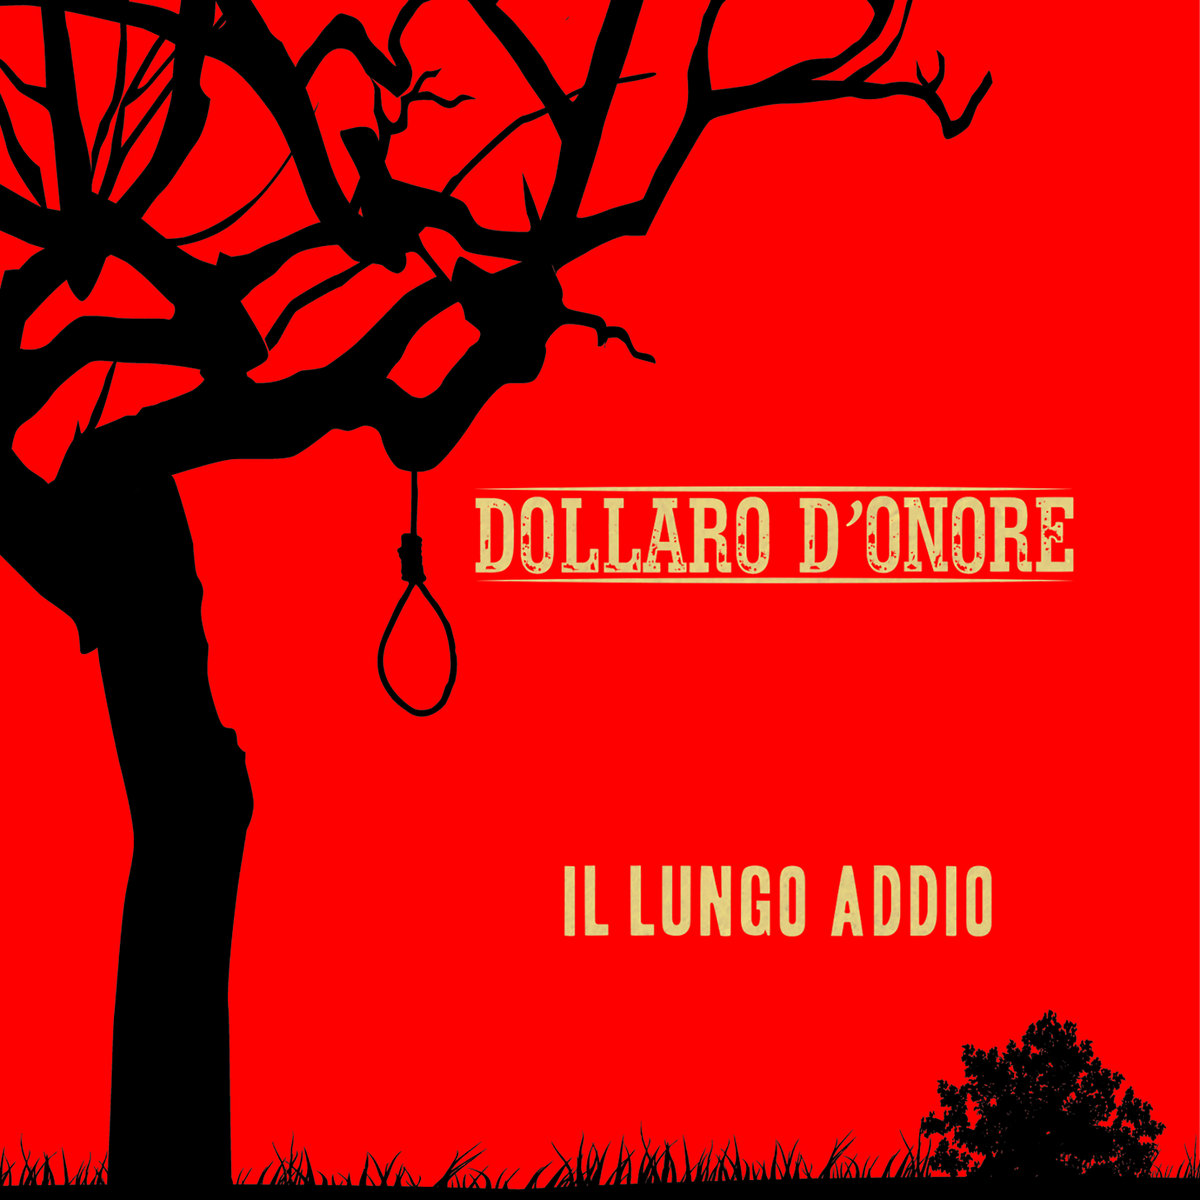 from Il lungo addio by Dollaro D'Onore